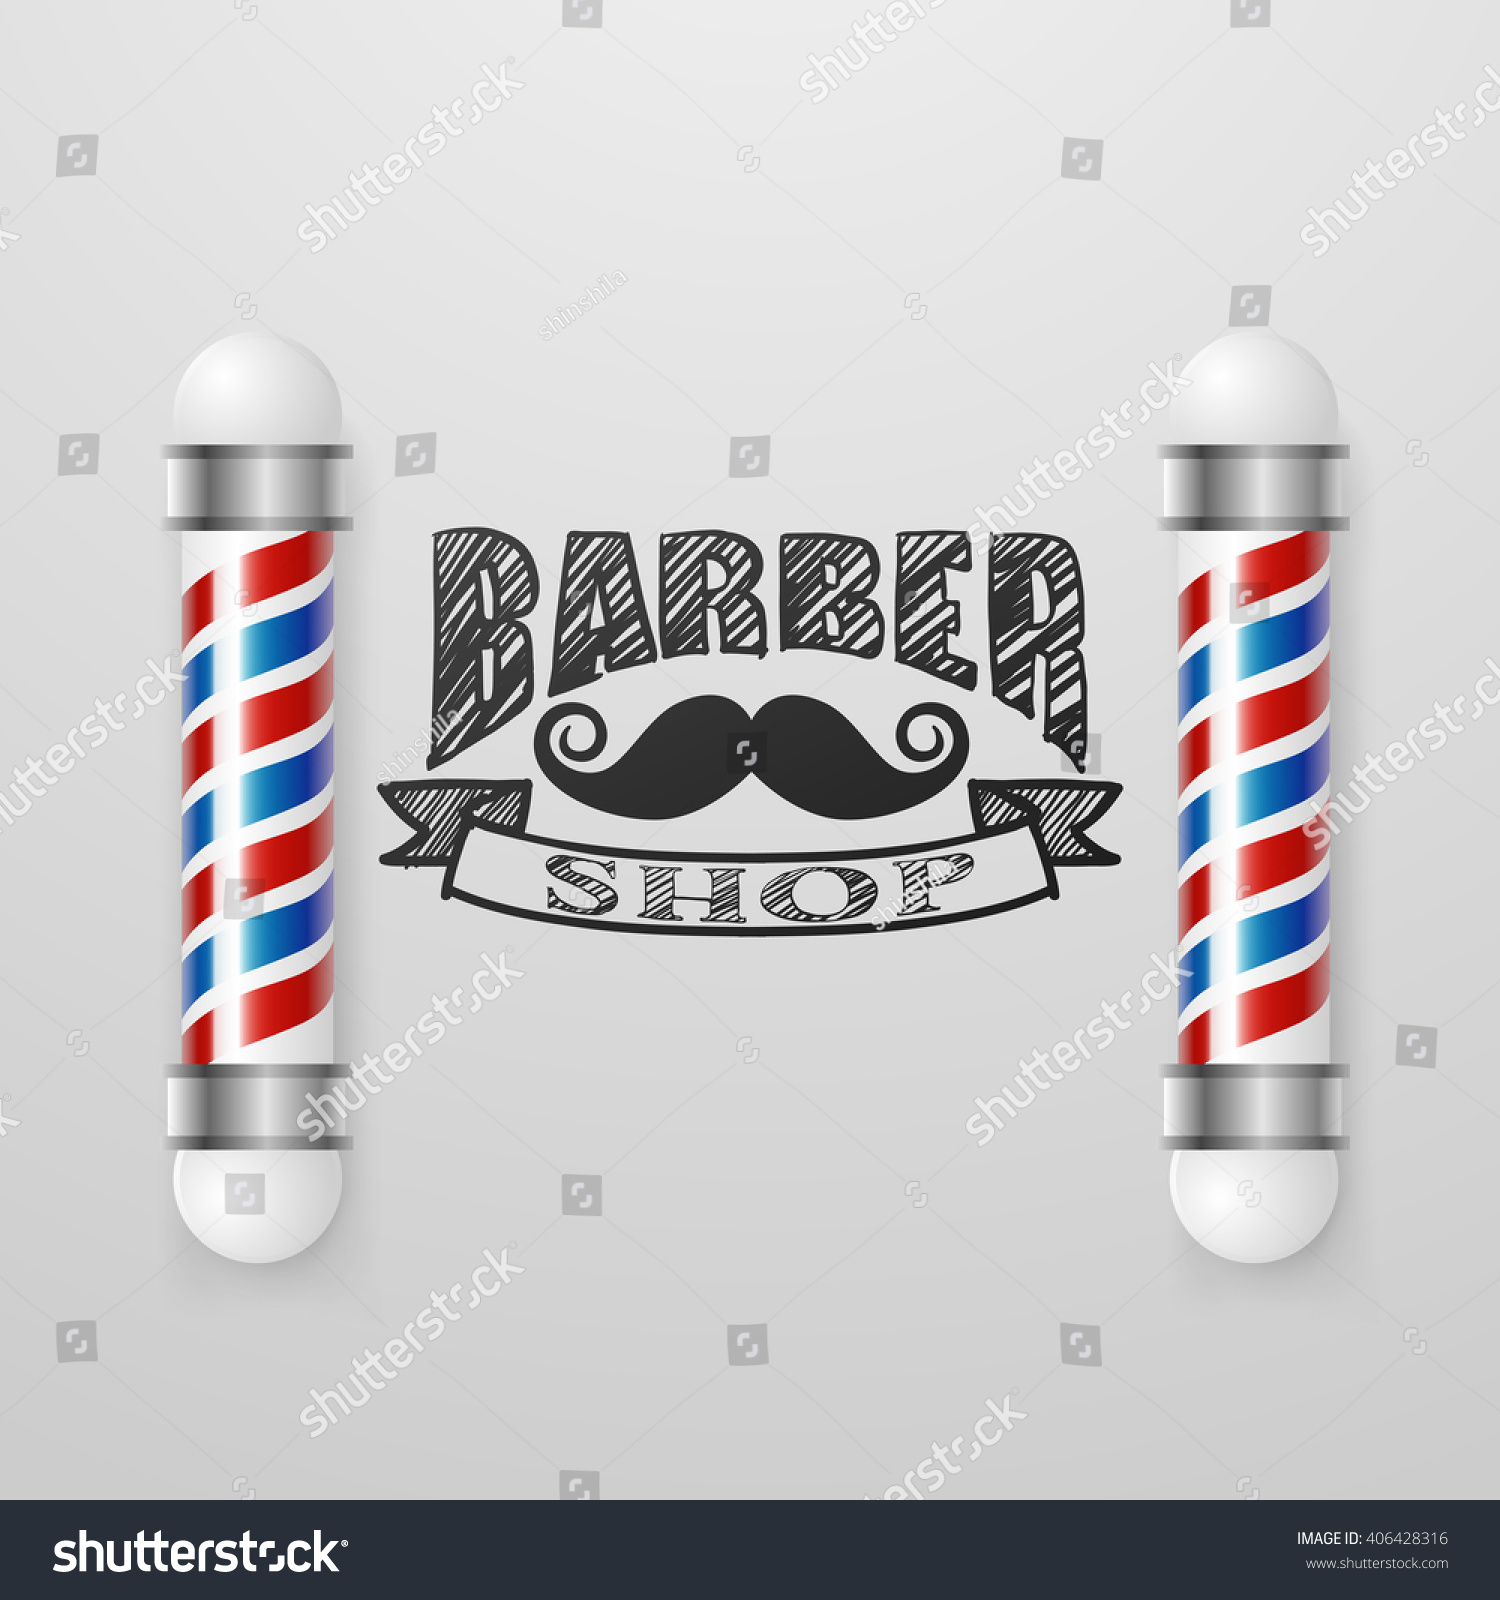 Old Fashioned Vintage Barber Shop Silver Pole Design Template Face With Mustaches